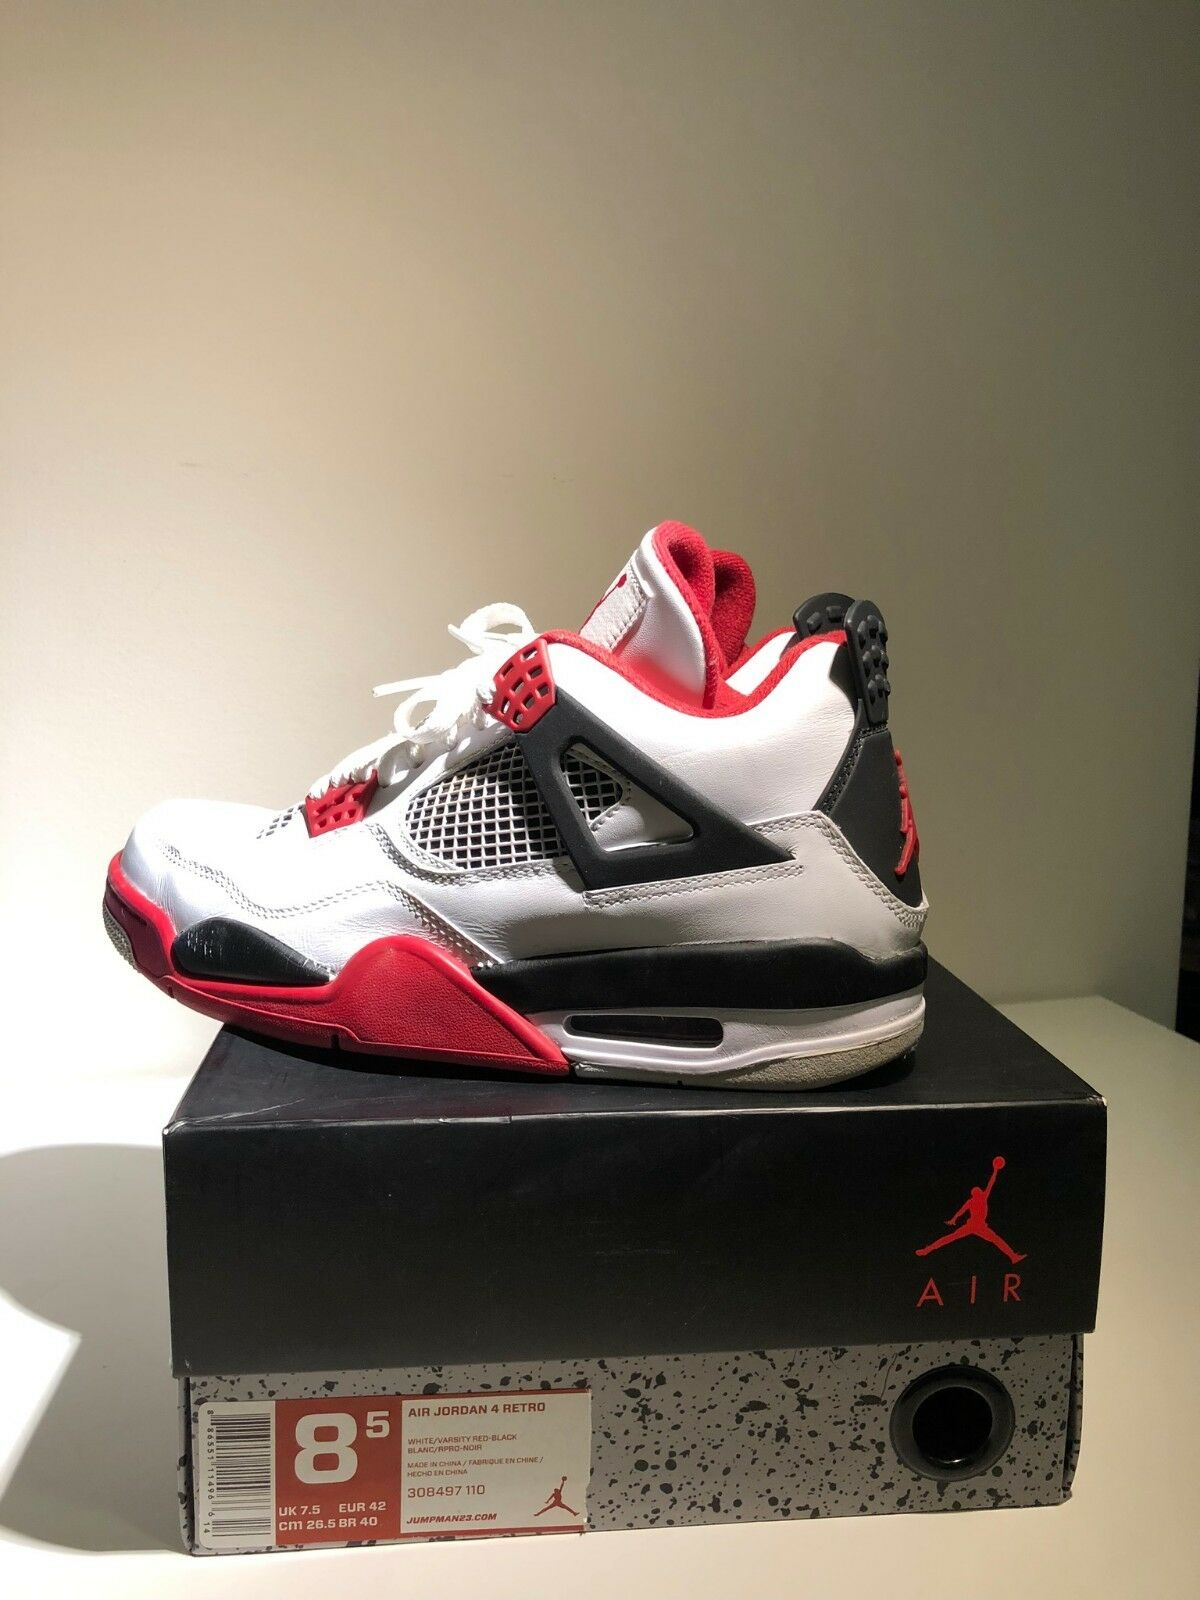 24e608096 AIR JORDAN 4 2012 RELEASE FIRE (US 8.5) RETRO RED nupebz1922-Athletic Shoes